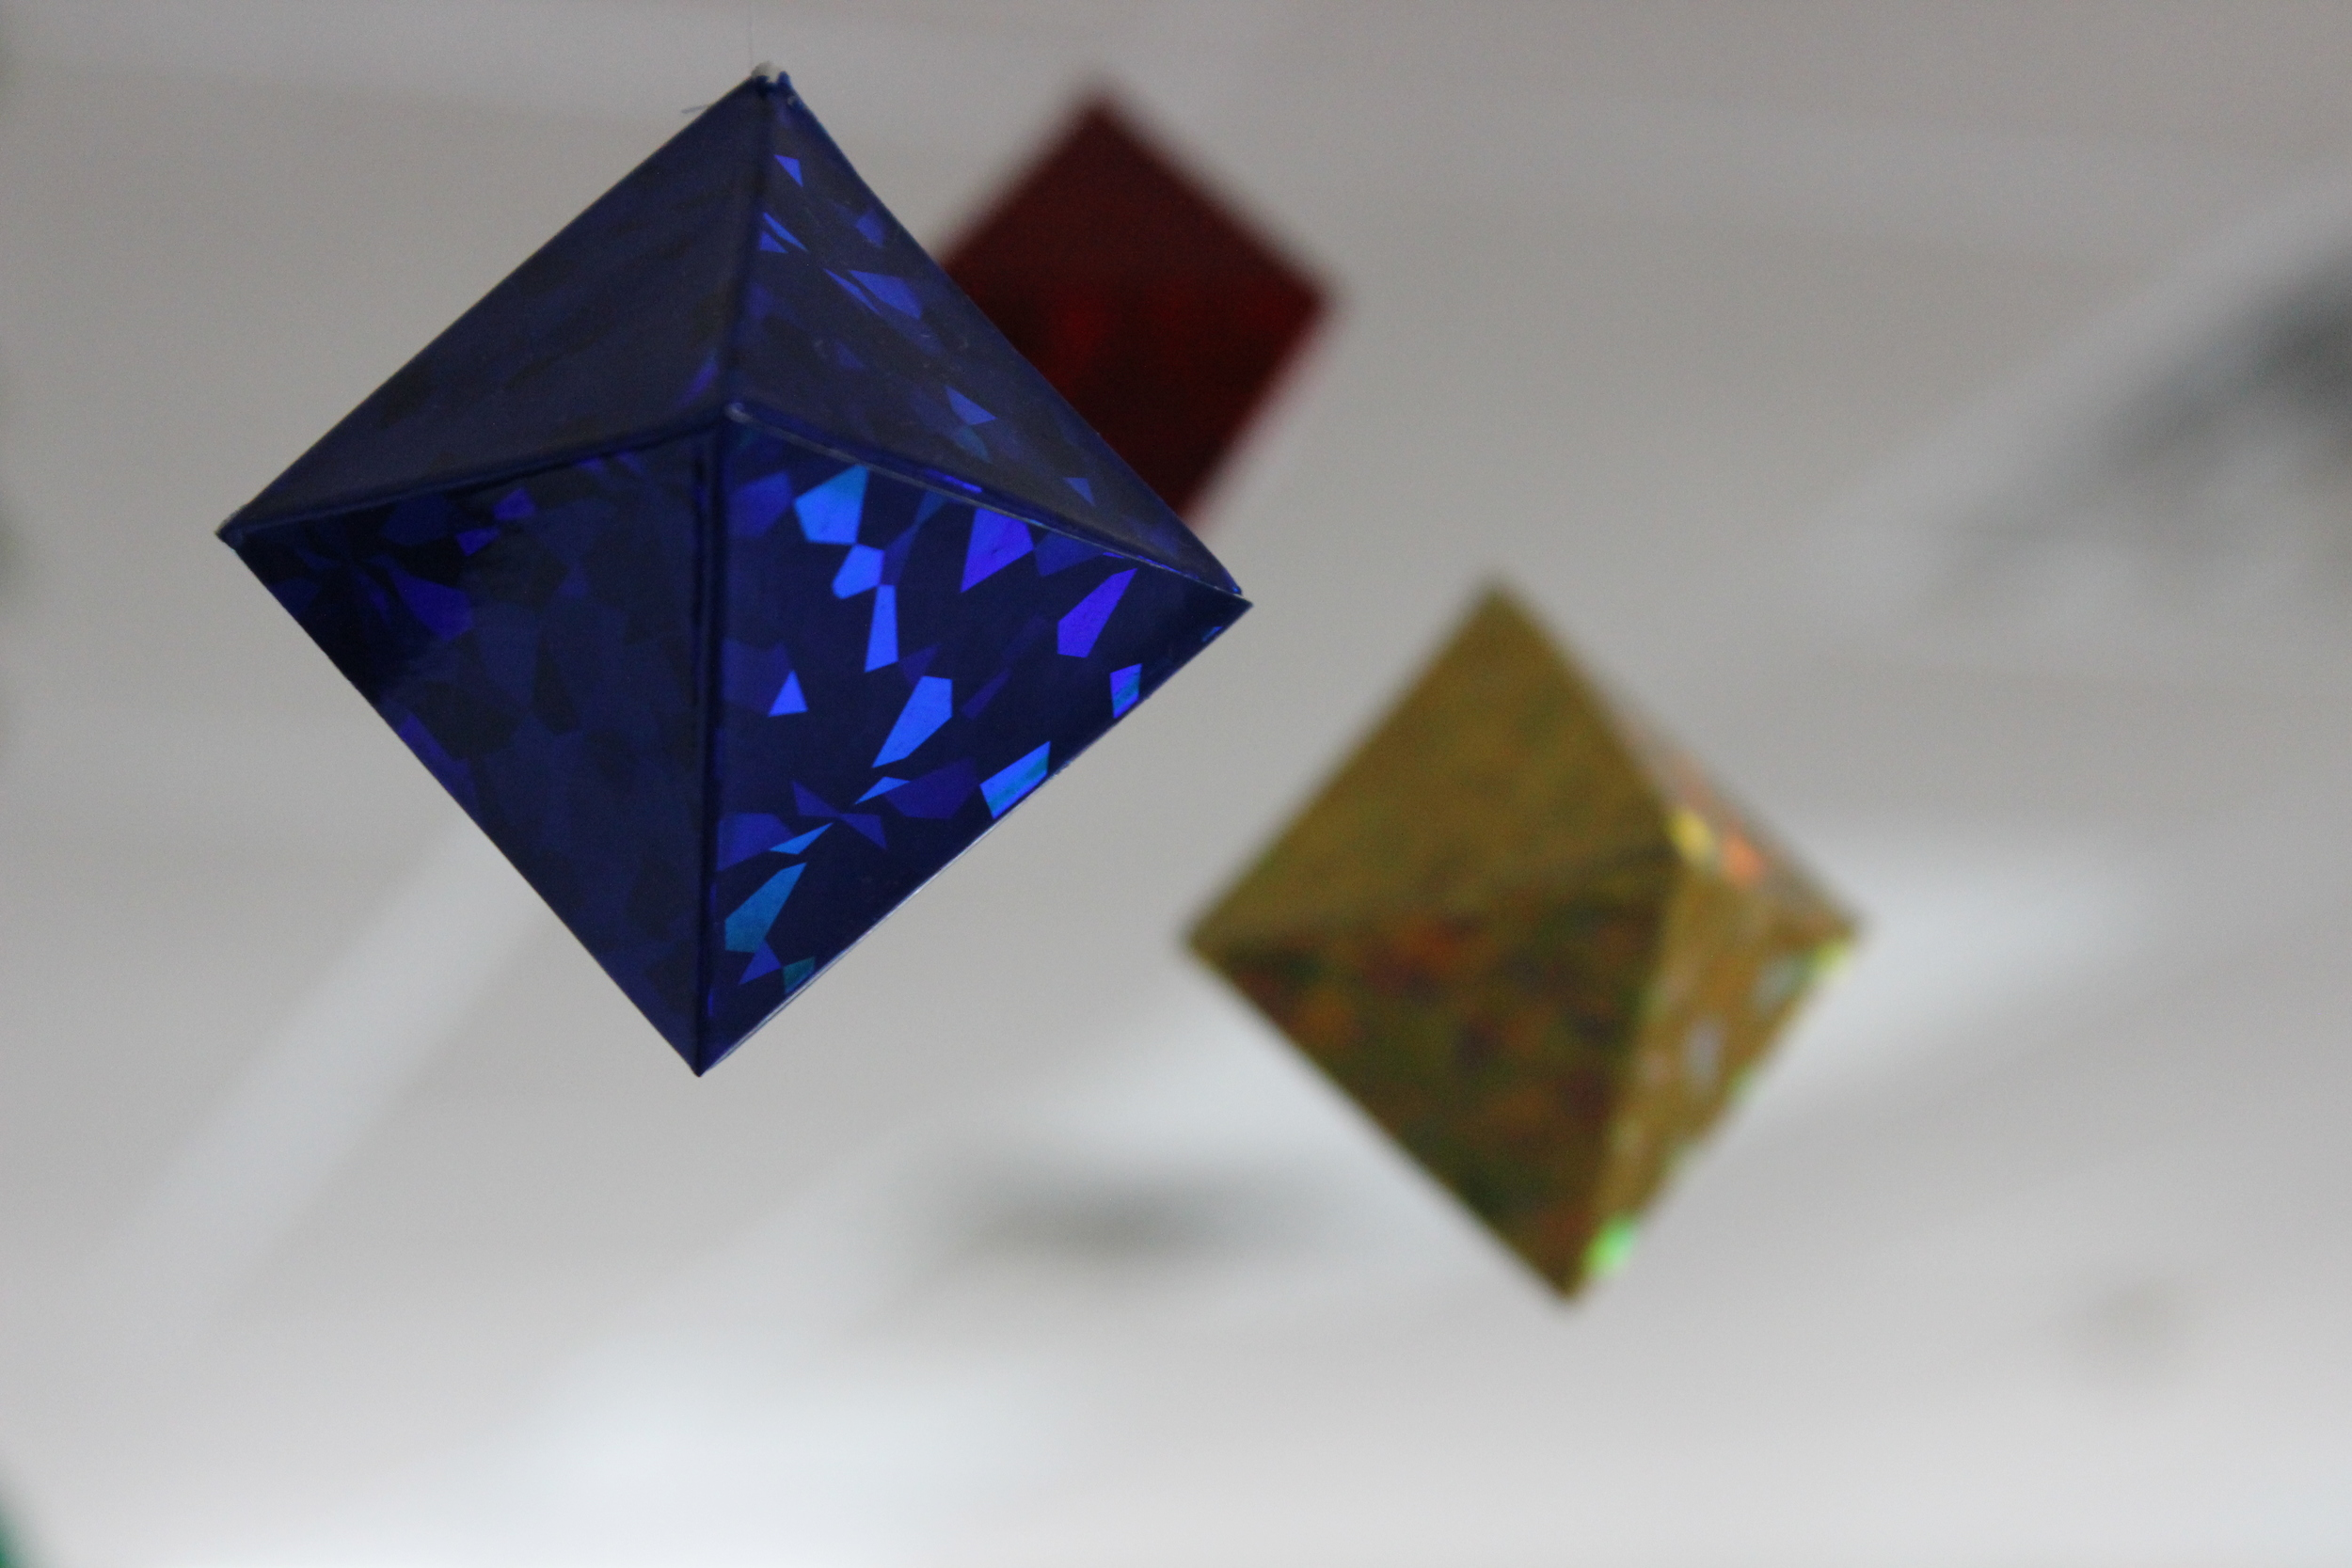 The Octahedron Mobile aids in the development of the visual sense, through visual focusing and tracking and is offered to the child around 2 months of age. At this time, the child is beginning to see color, so we offer primary colors in metallic paper, attracting the child to the contrasts of light and dark.